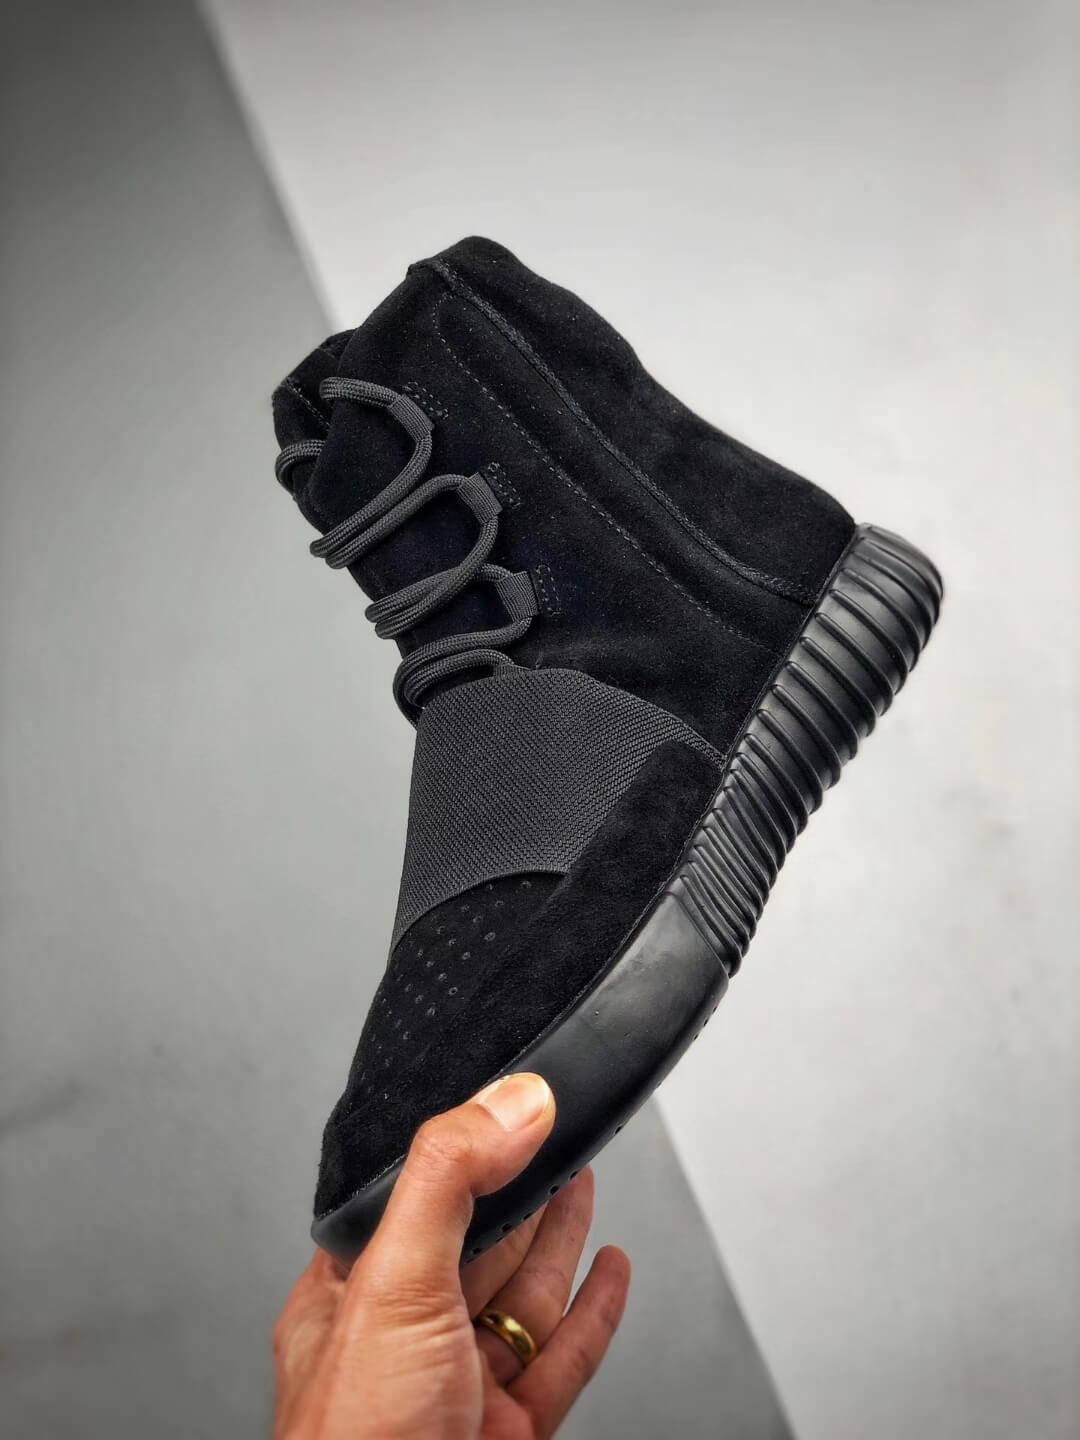 The Adidas Yeezy Boost 750 Triple Black Suede Quality Rep Sneaker 04